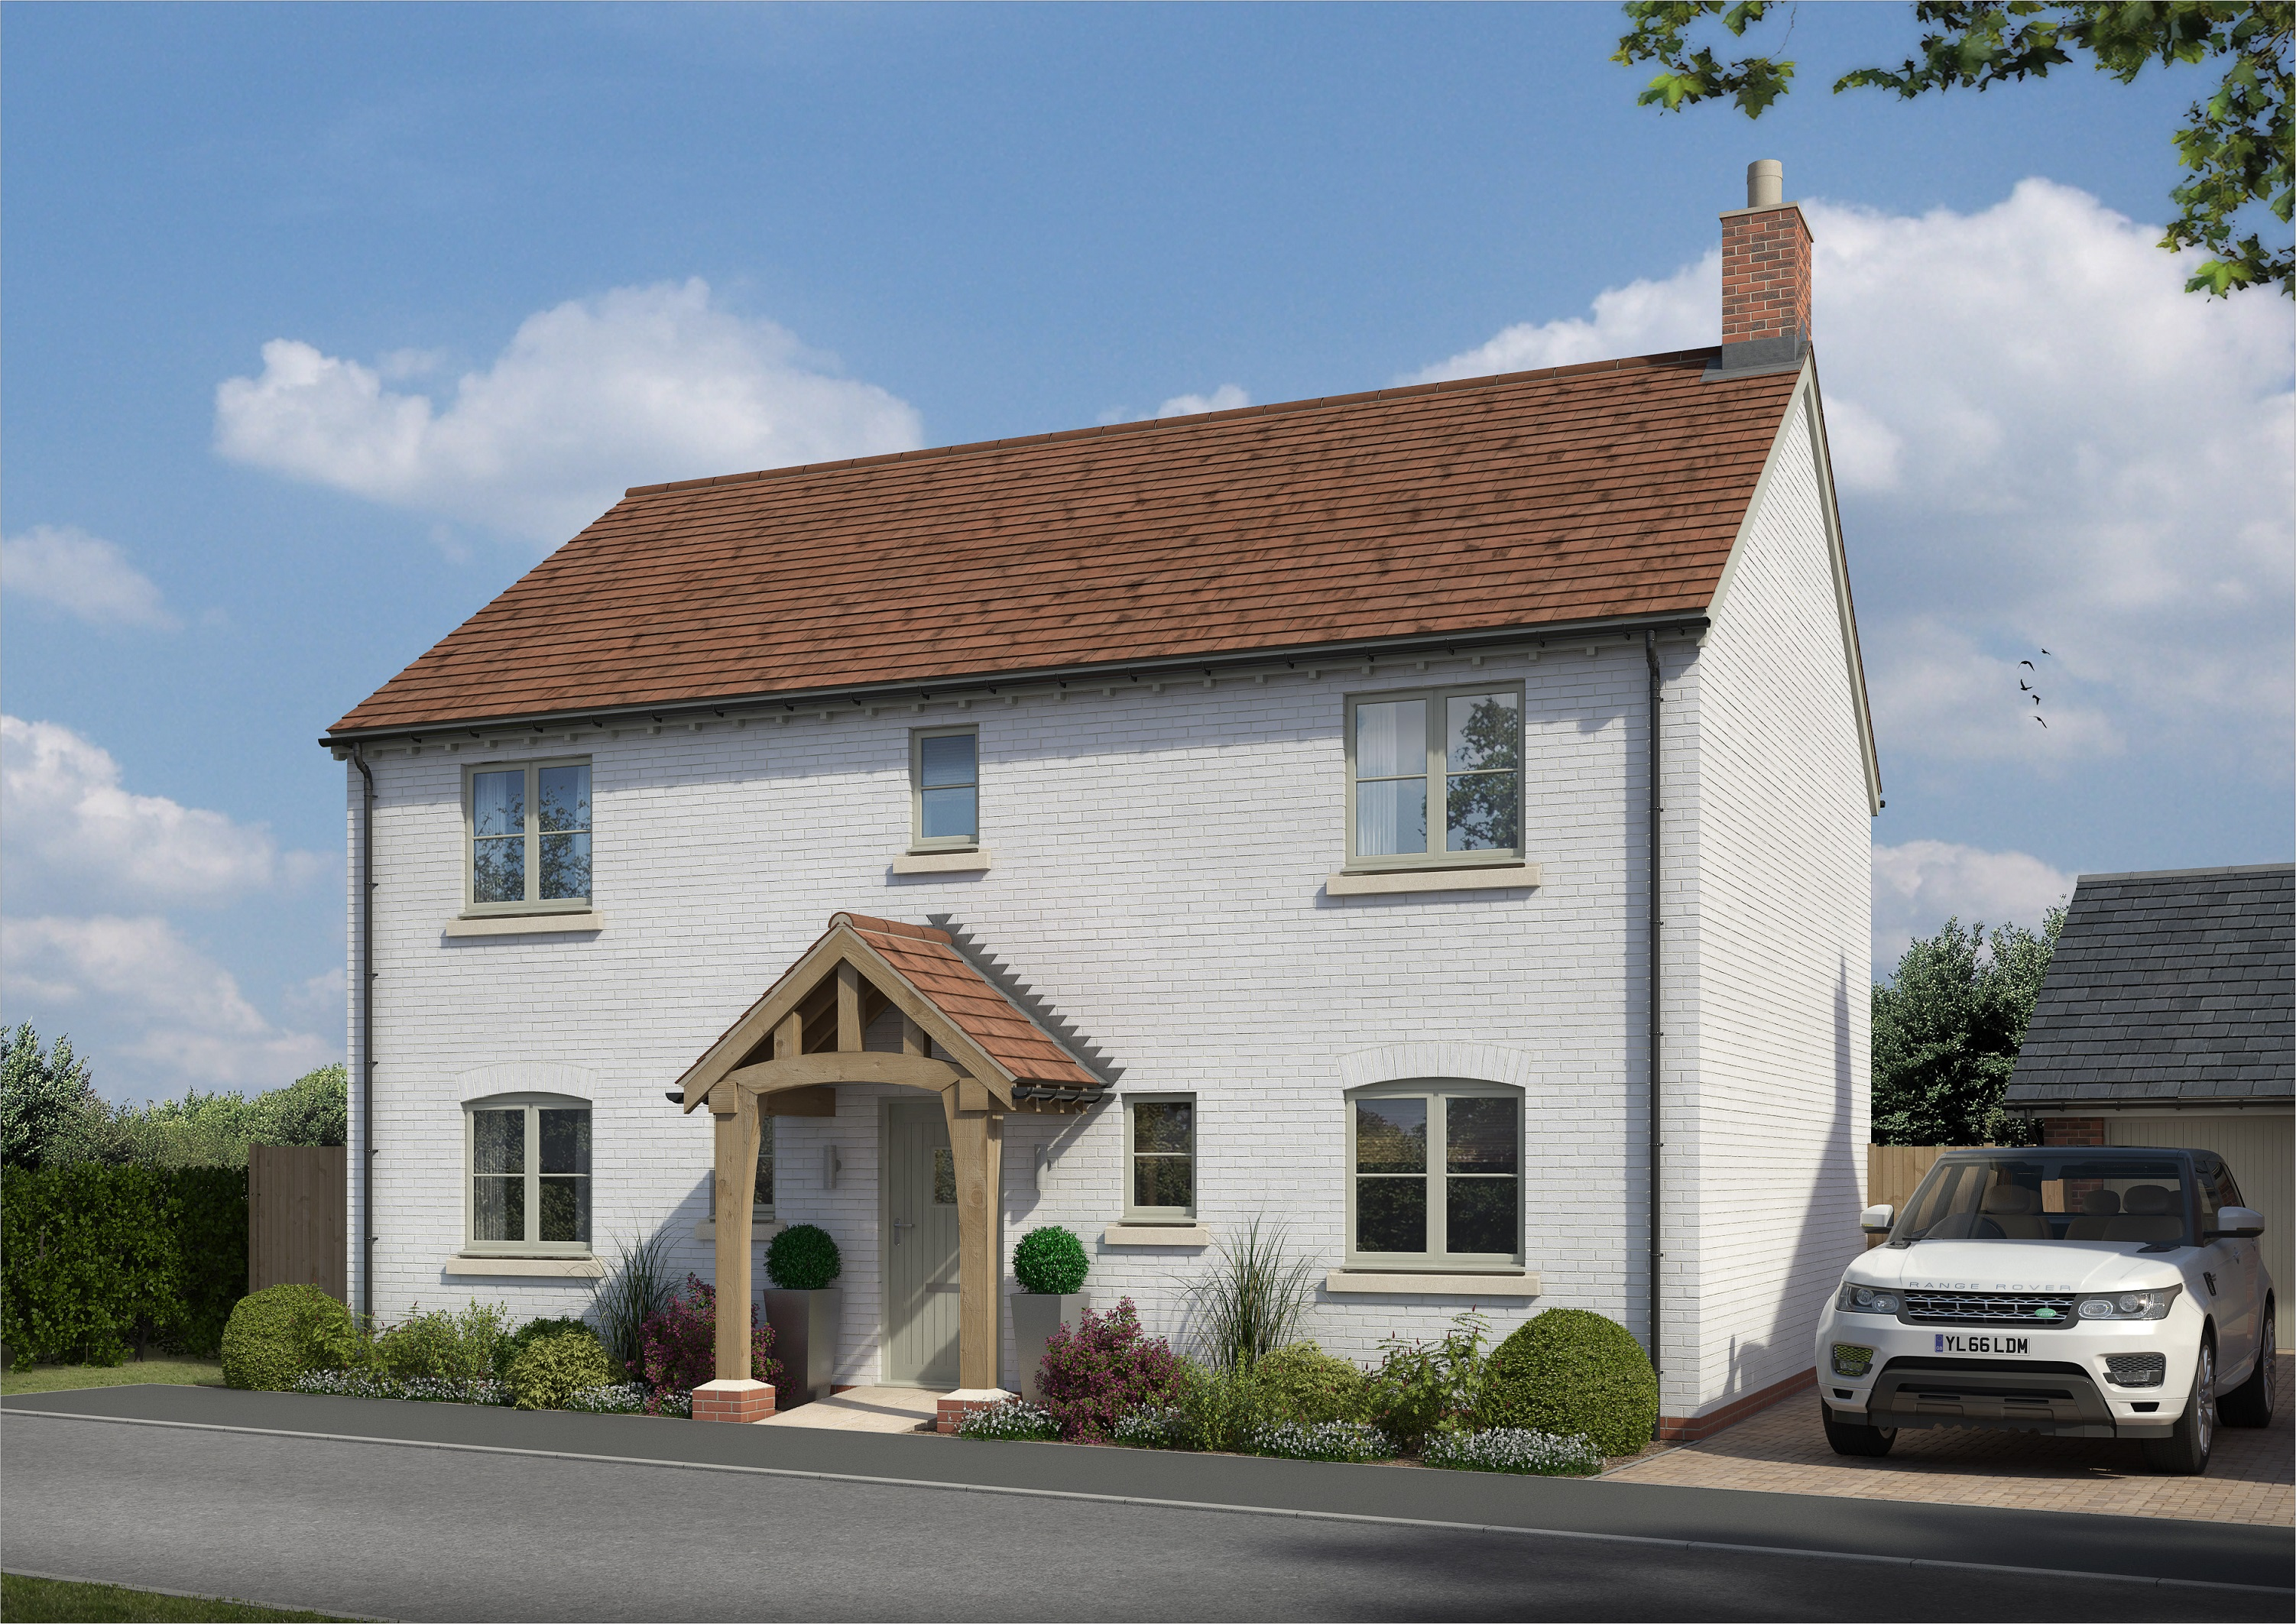 Freeman Homes releases phase one of Weobley development